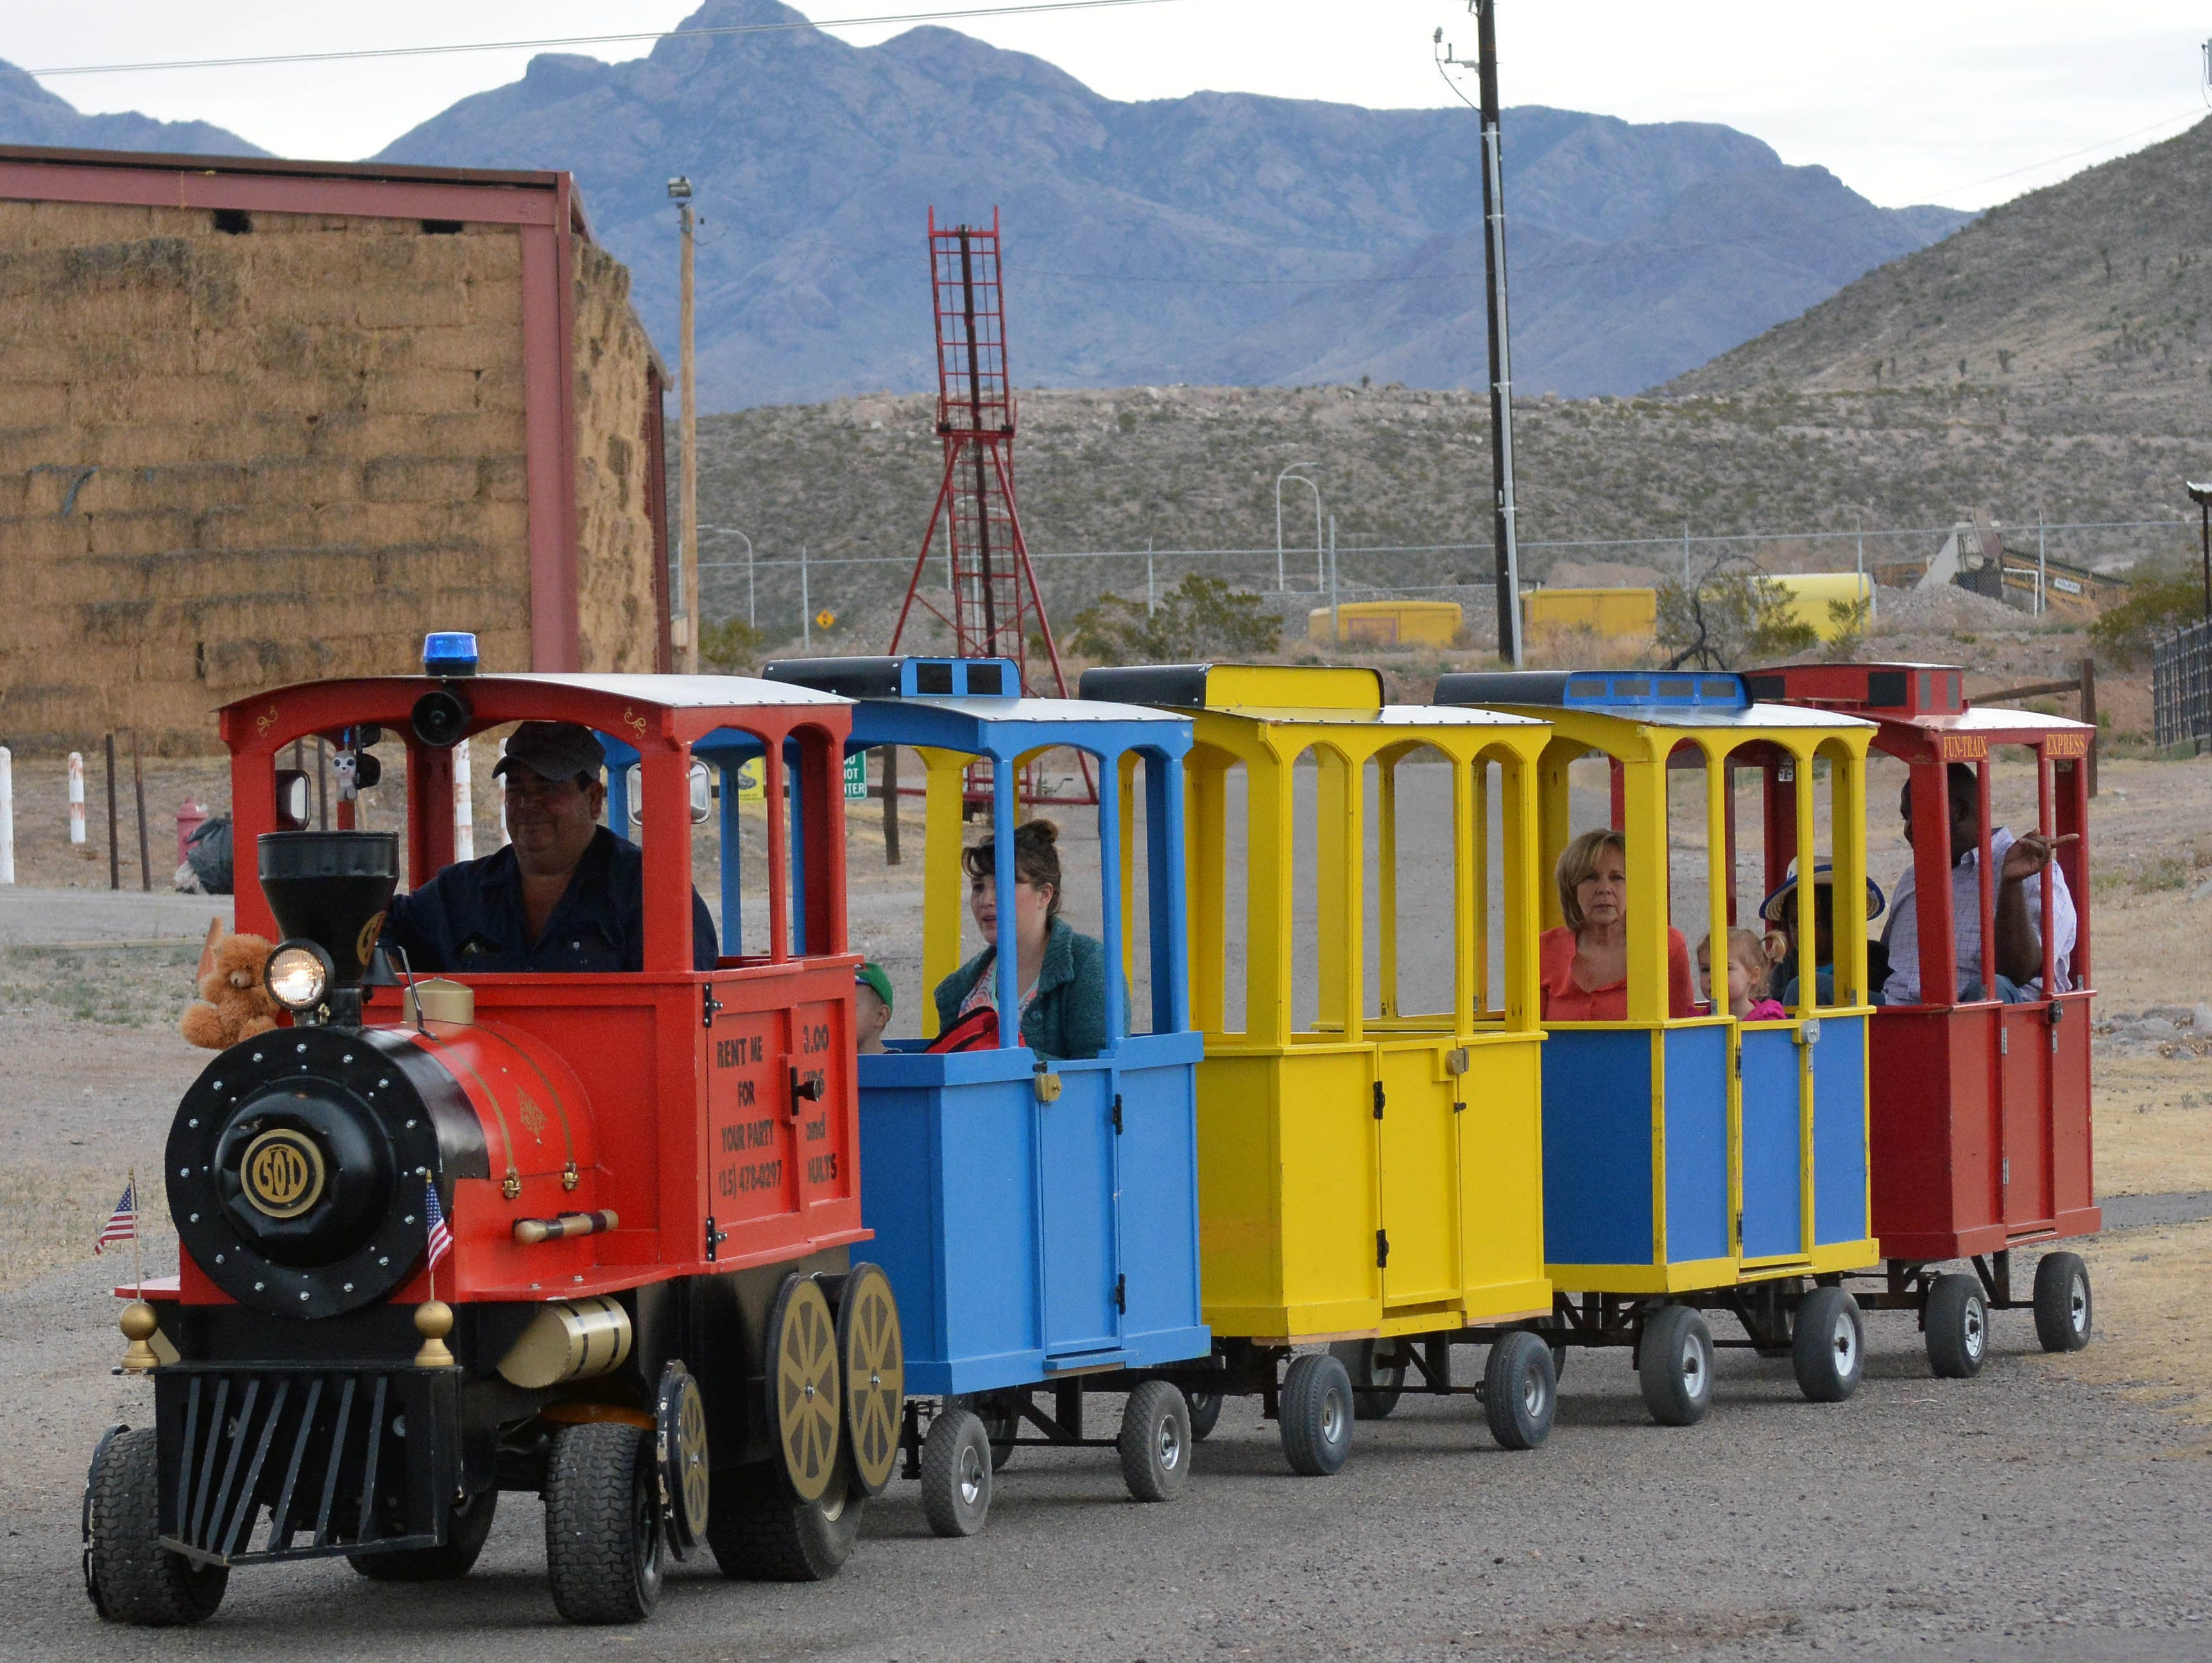 Mini train rides were available to everyone at the 20th annual Cowboy Days, held Saturday, March 2, 2019, at the New Mexico Farm and Ranch Heritage Museum.